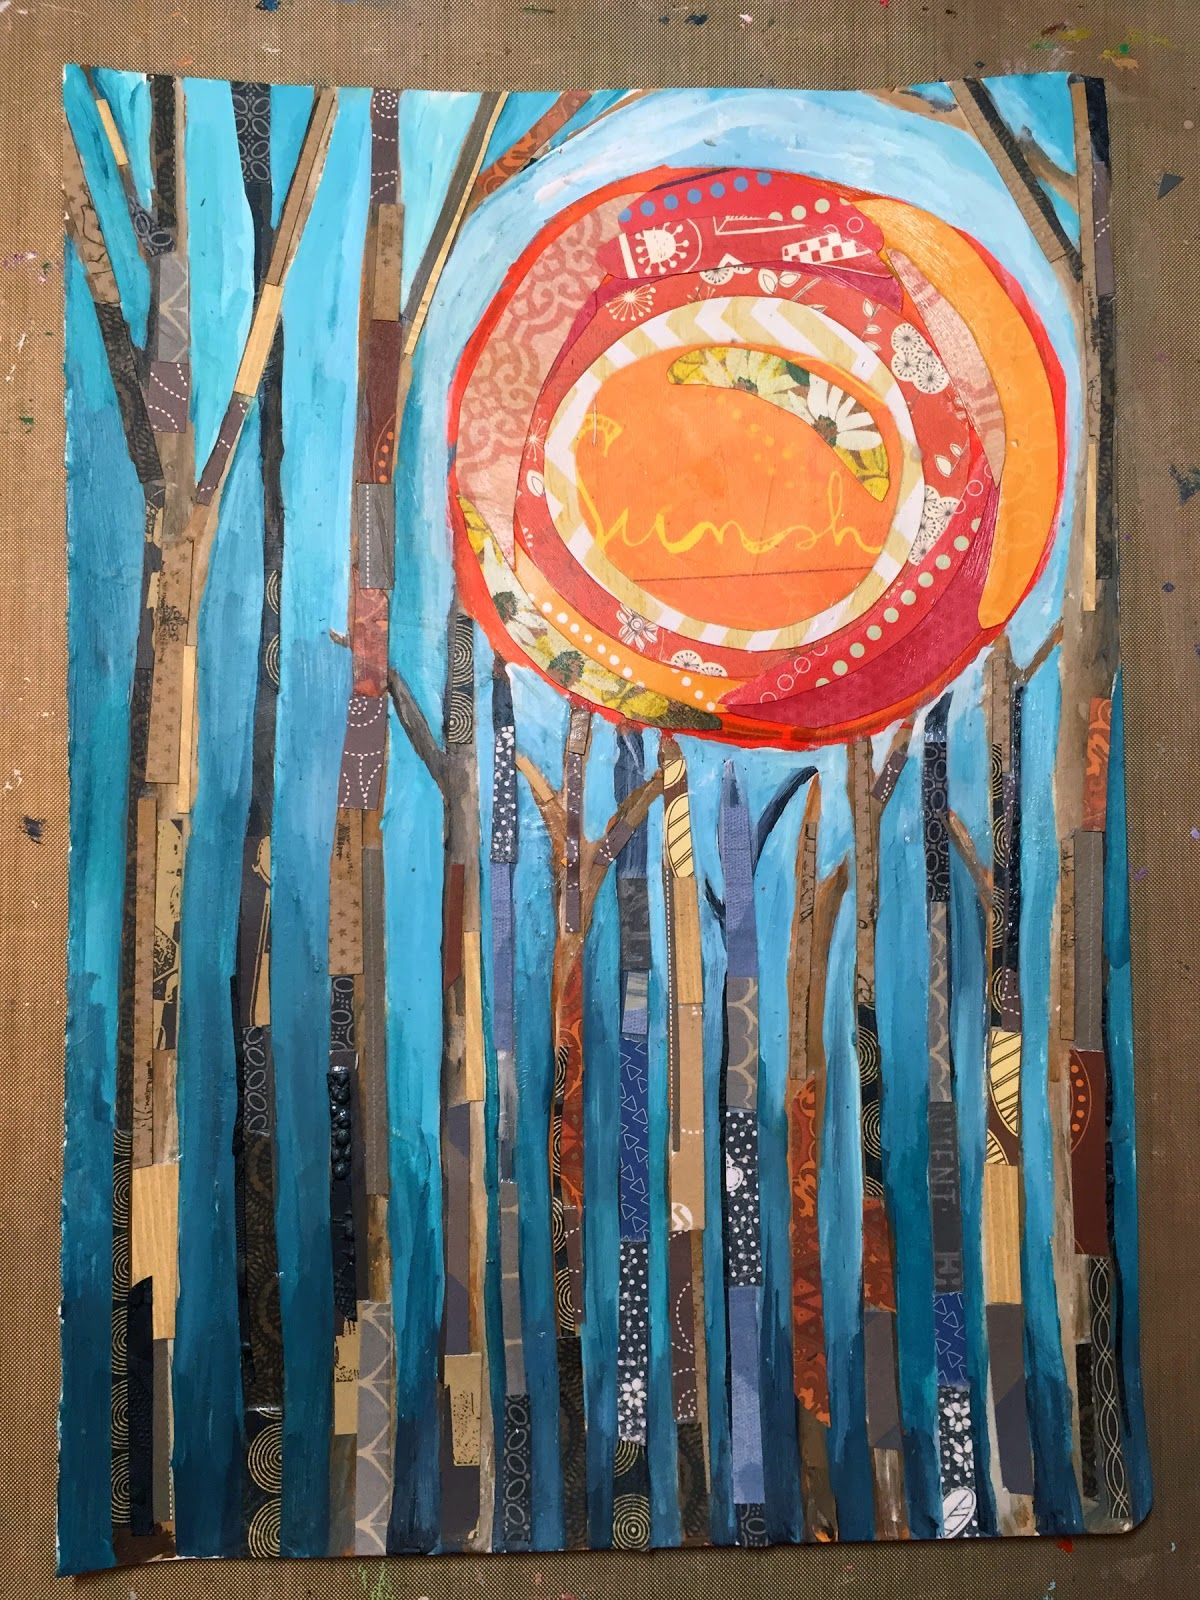 Mixed Media Painted Paper Collage By Gwen Lafleur Using